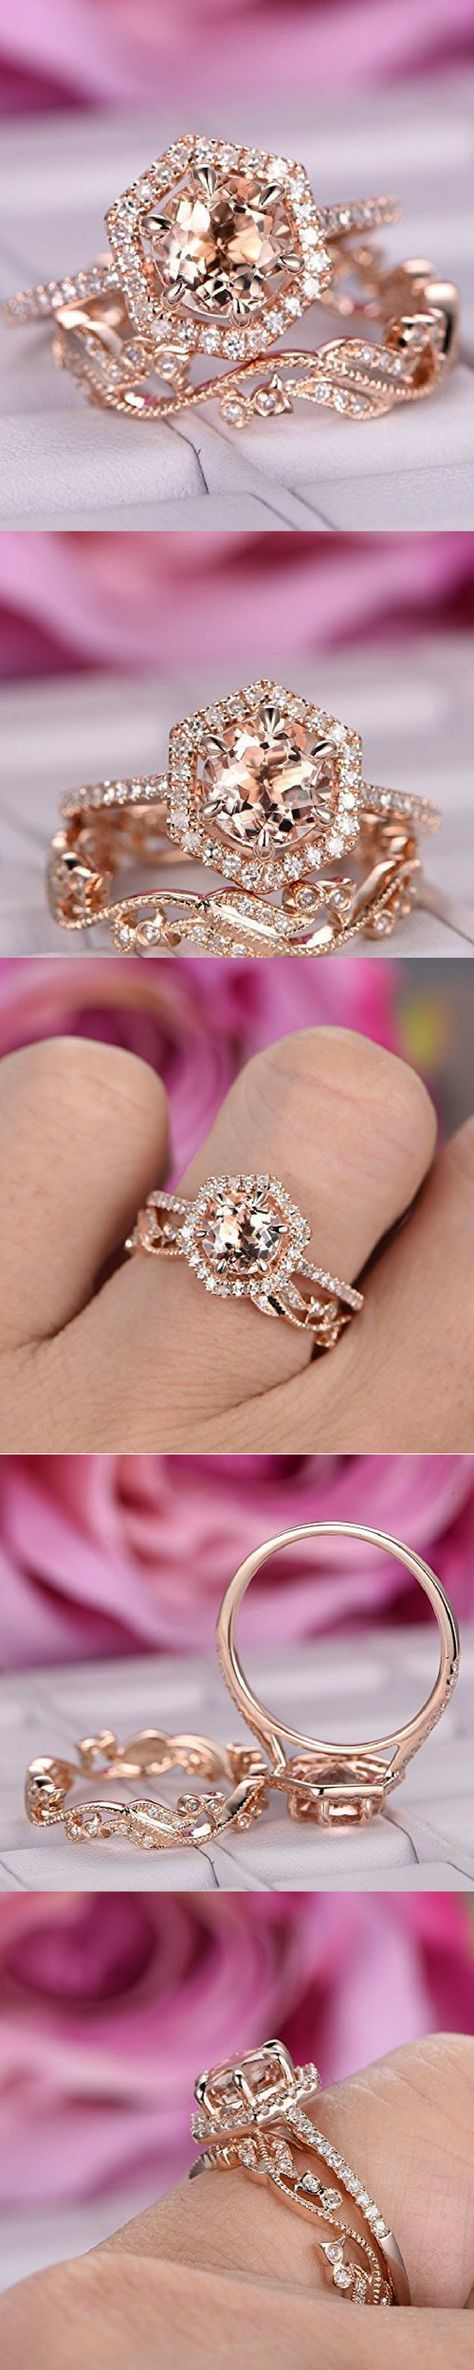 Engagement Rings Round Morganite Engagement Ring Set Pave Diamond ...